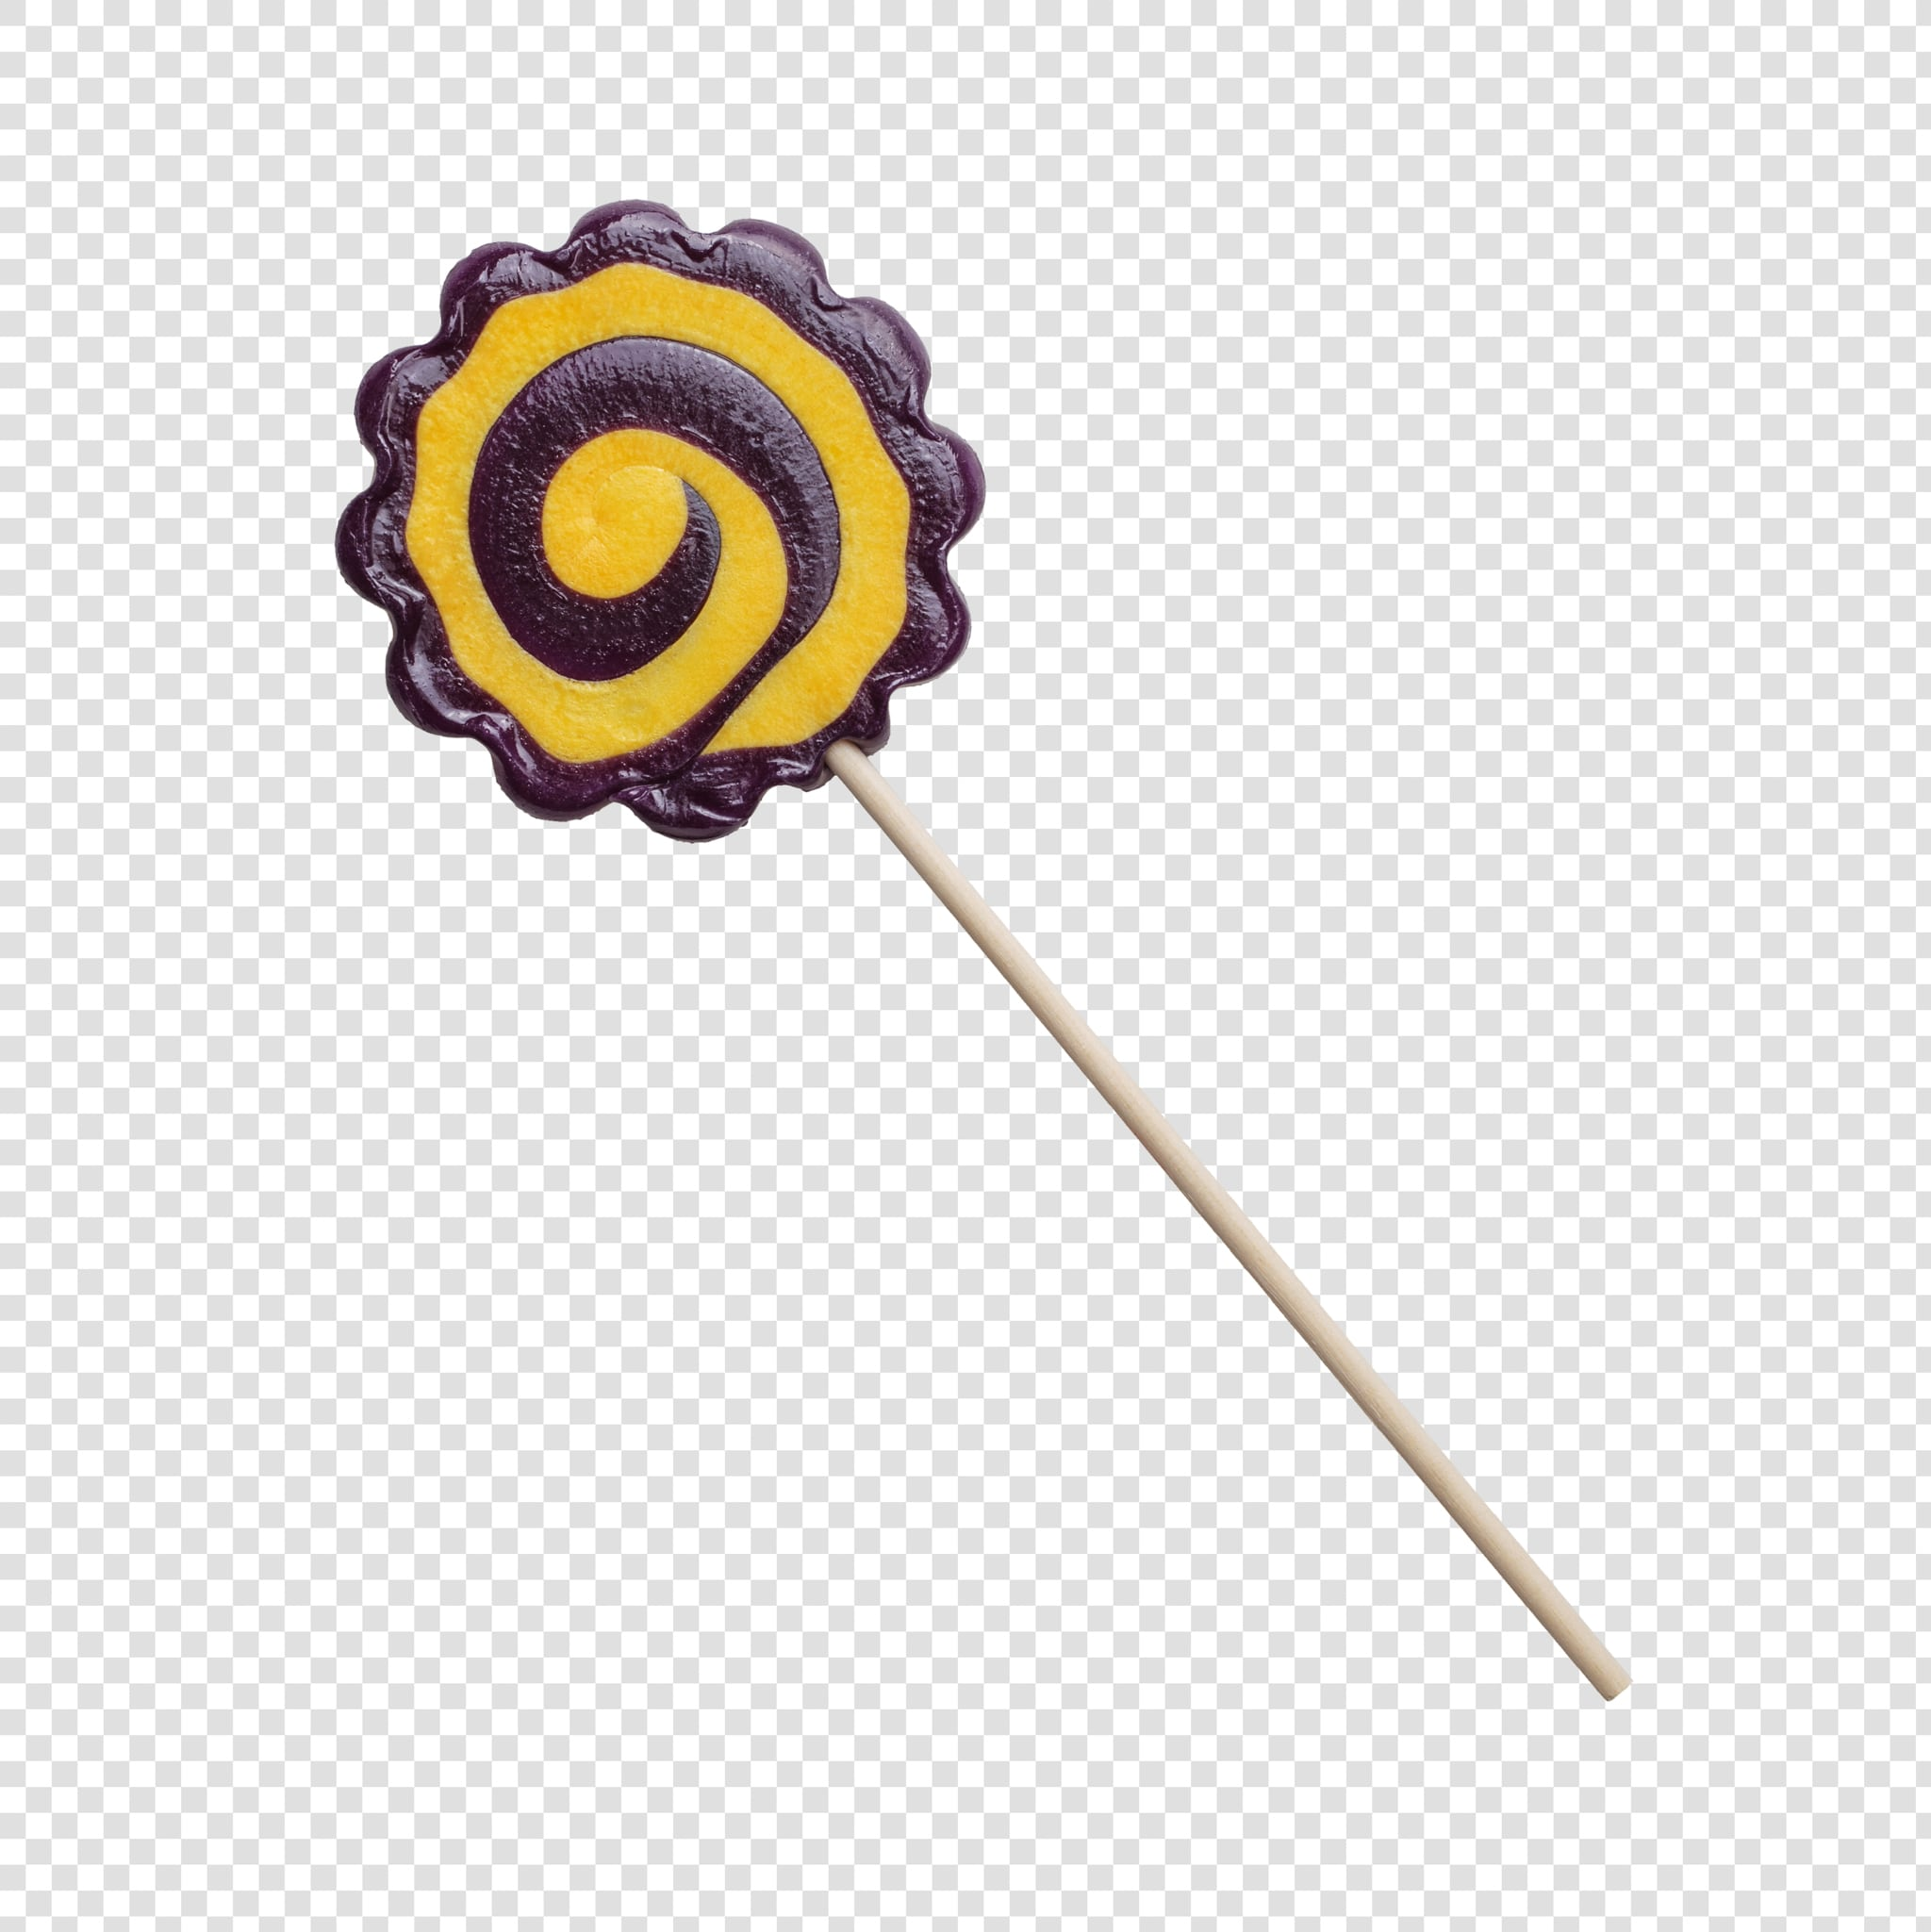 Lollipop PSD isolated image